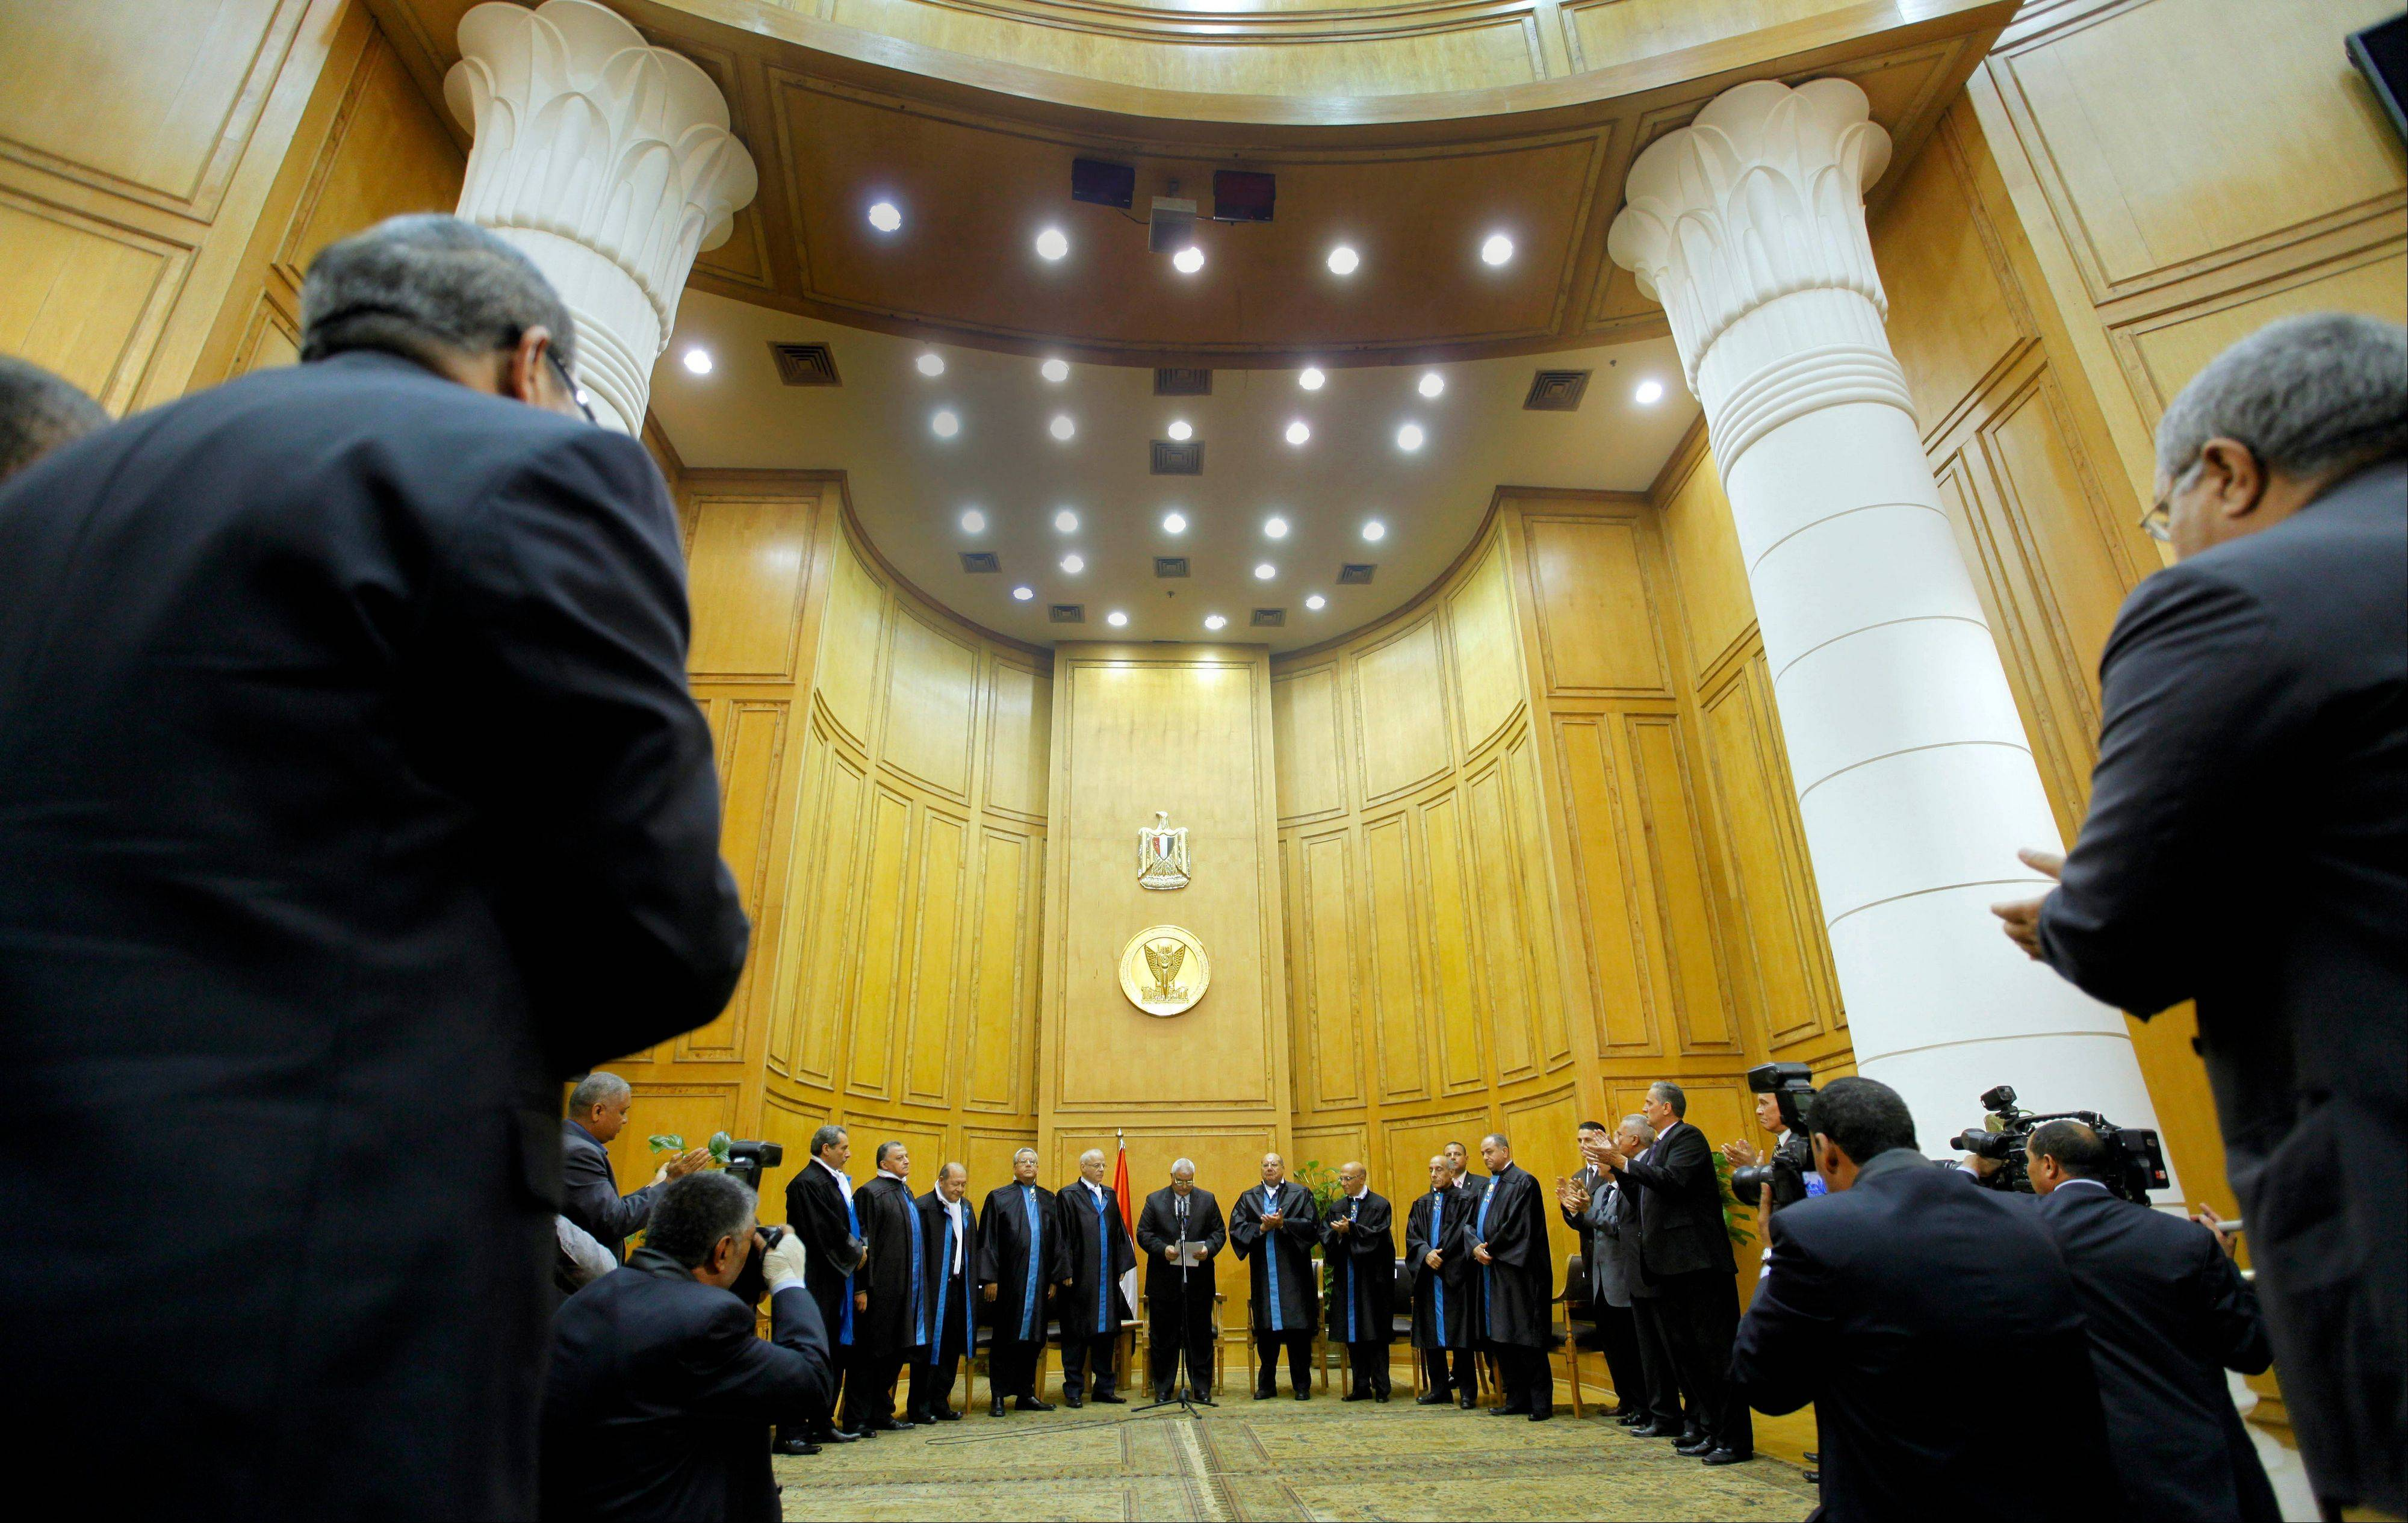 Egypt's chief justice Adly Mansour, center, is applauded at his swearing in ceremony as the nation's interim president Thursday, July 4, 2013. The chief justice of Egypt's Supreme Constitutional Court was sworn in Thursday as the nation's interim president, taking over hours after the military ousted the Islamist President Mohammed Morsi.